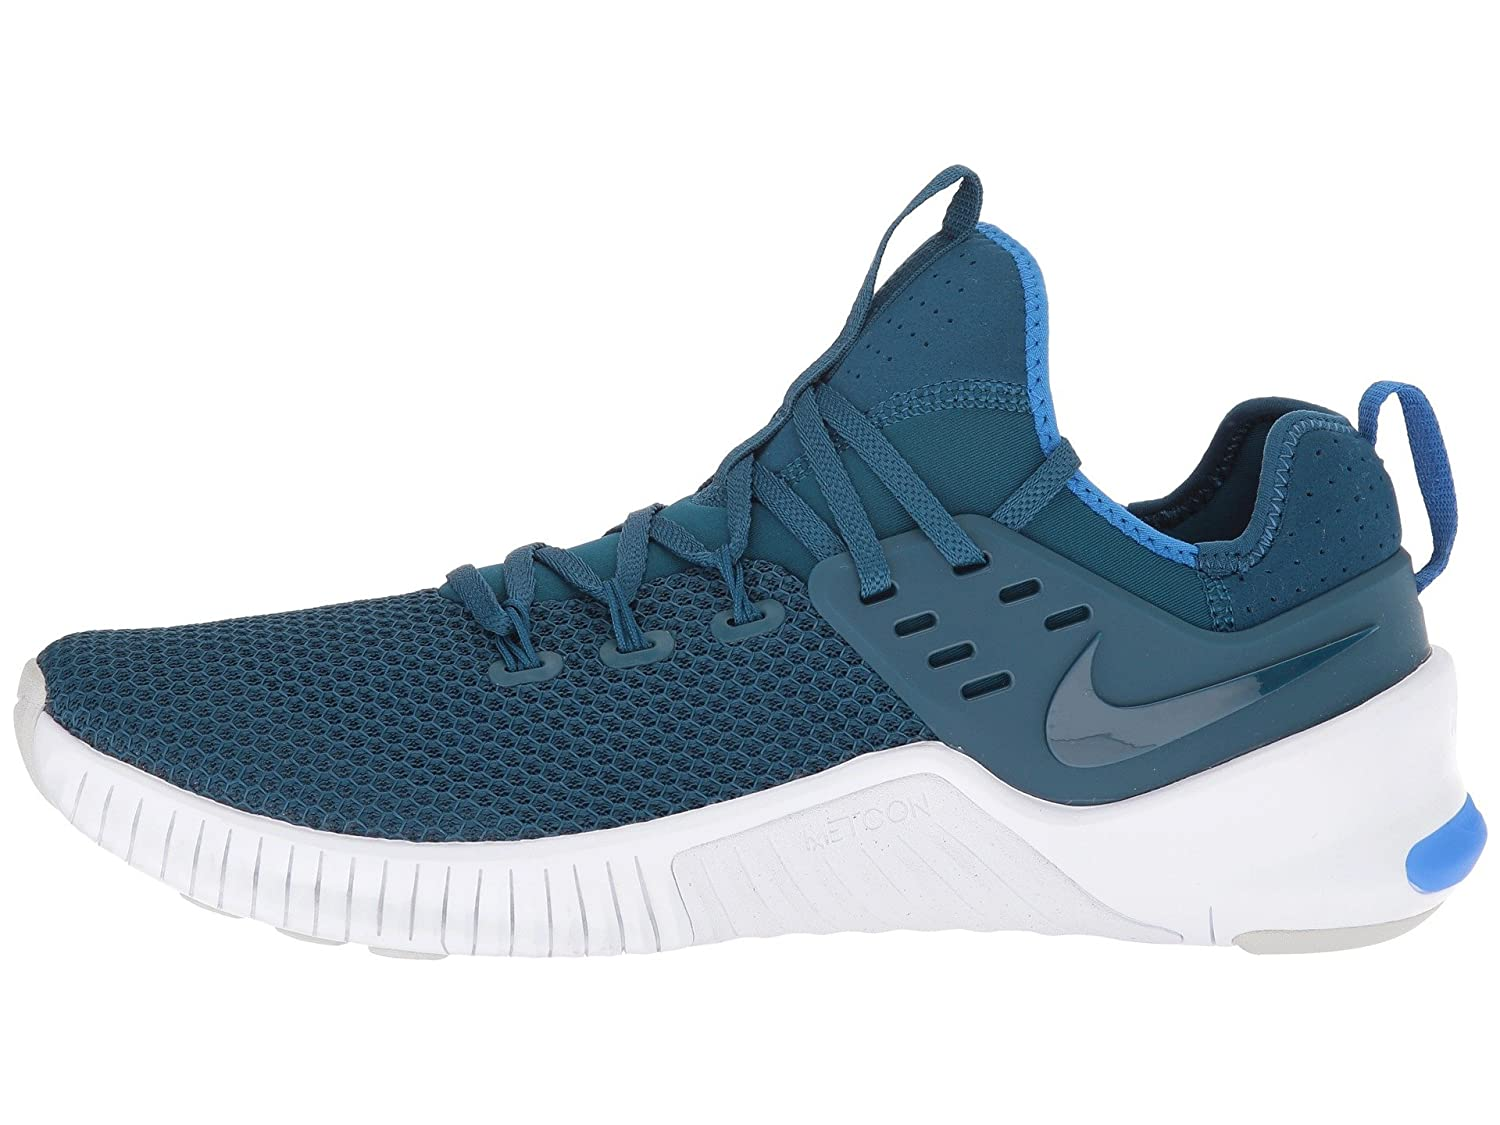 27eb9f137a28d Nike Free Metcon Mens Ah8141-400 Size 9